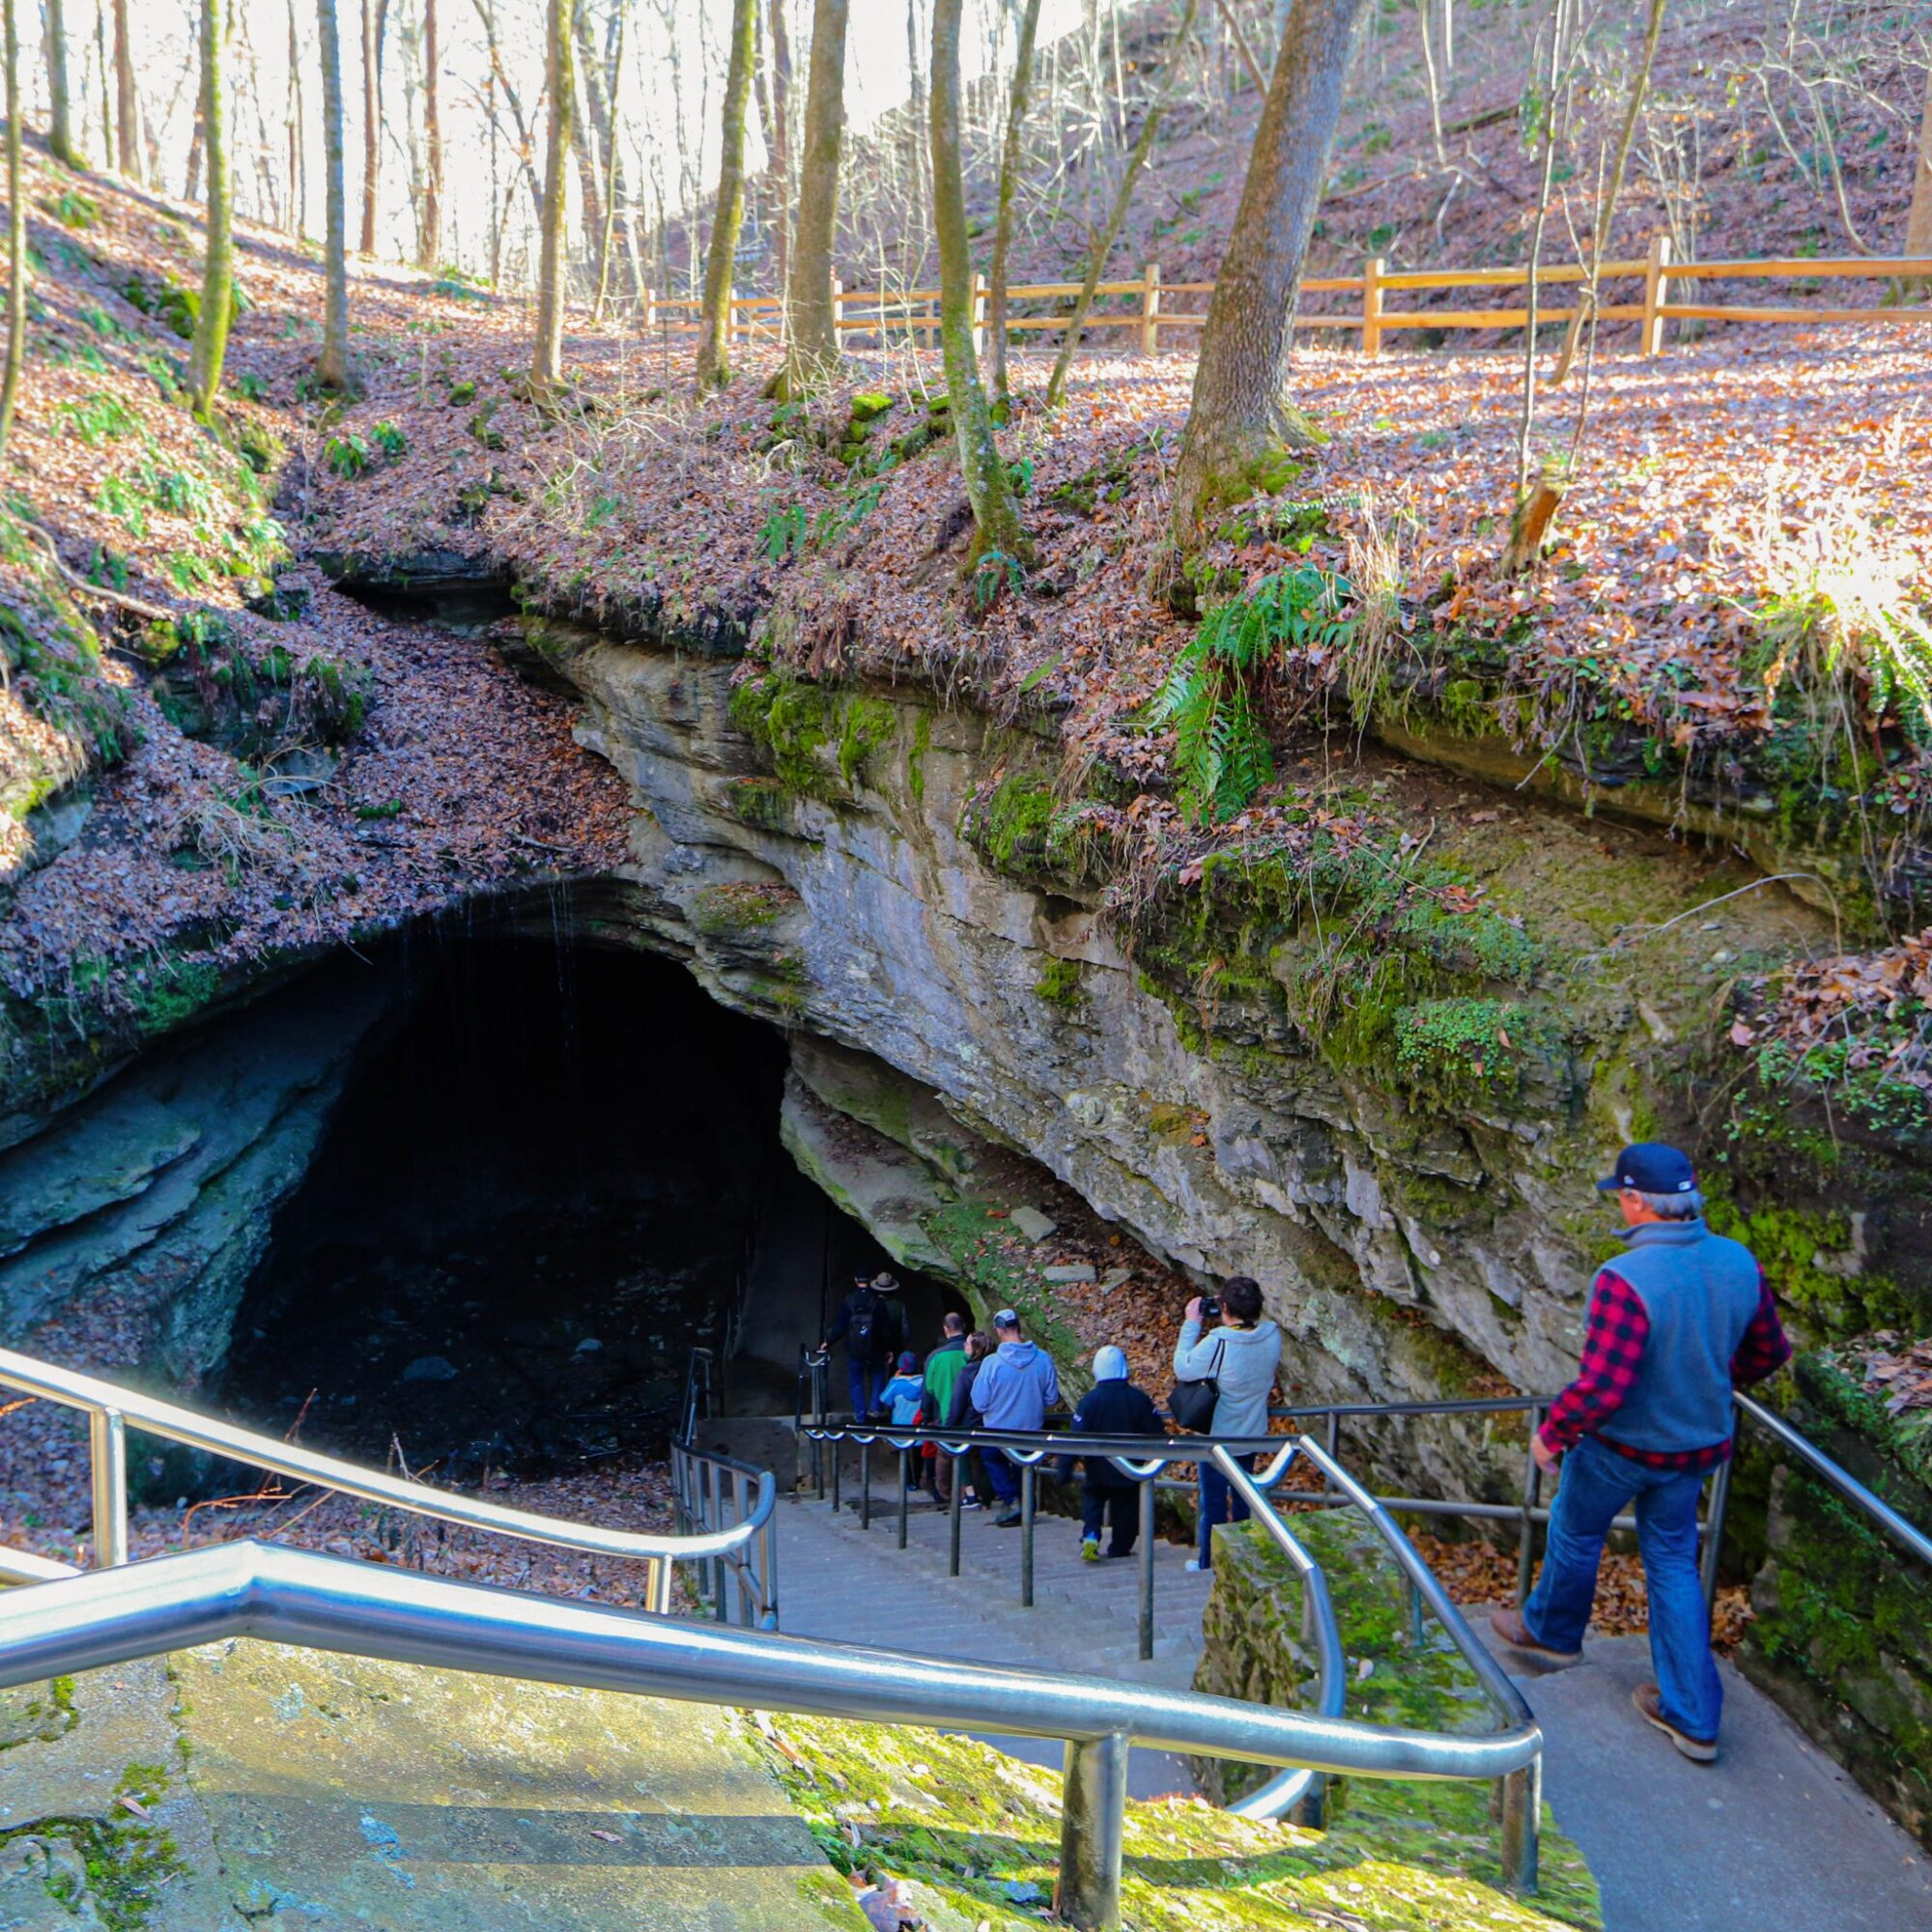 The entrance to Mammoth Cave in Kentucky.